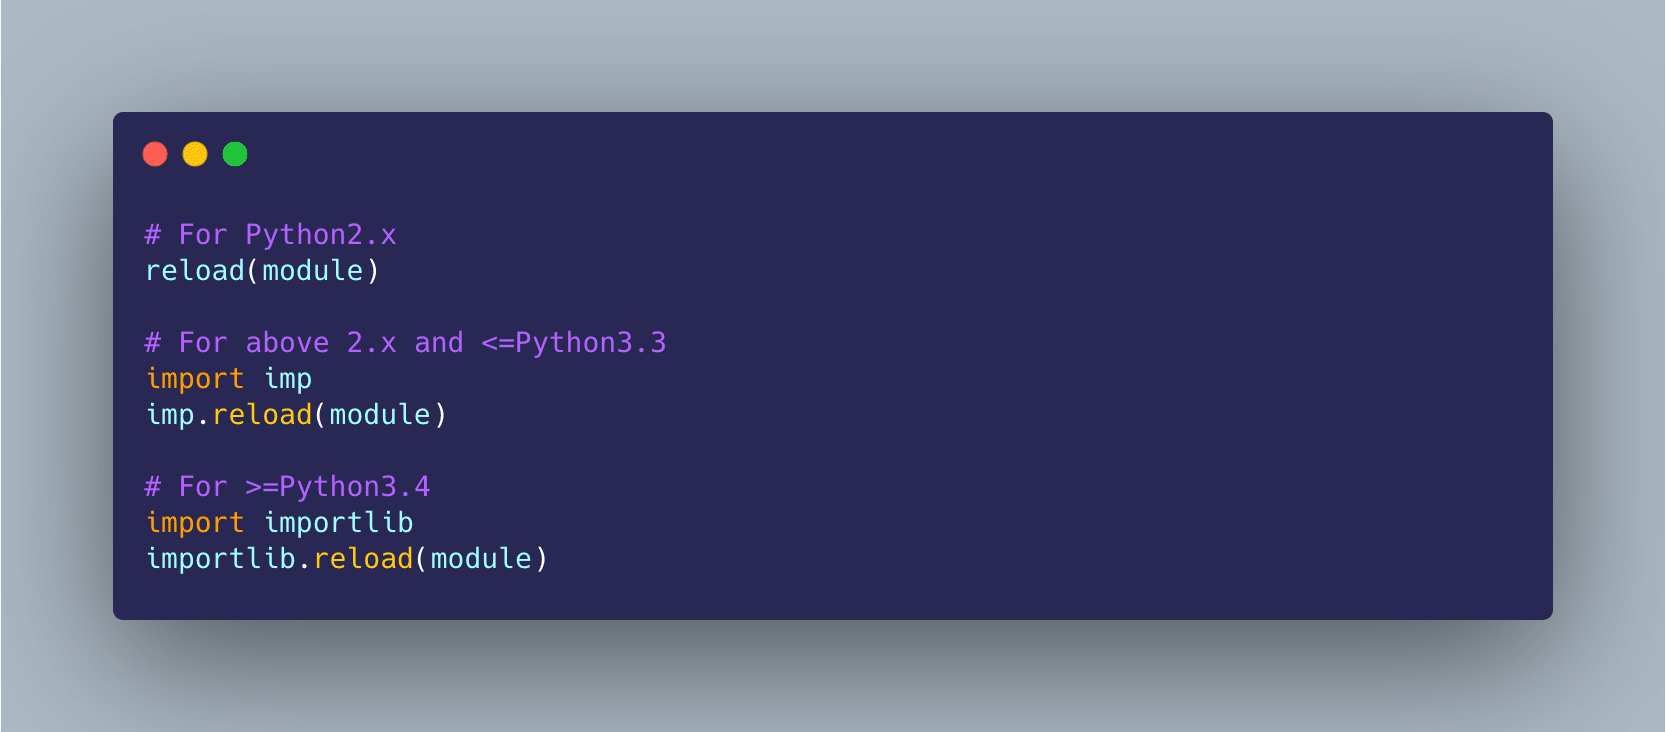 How does the import module work in Python